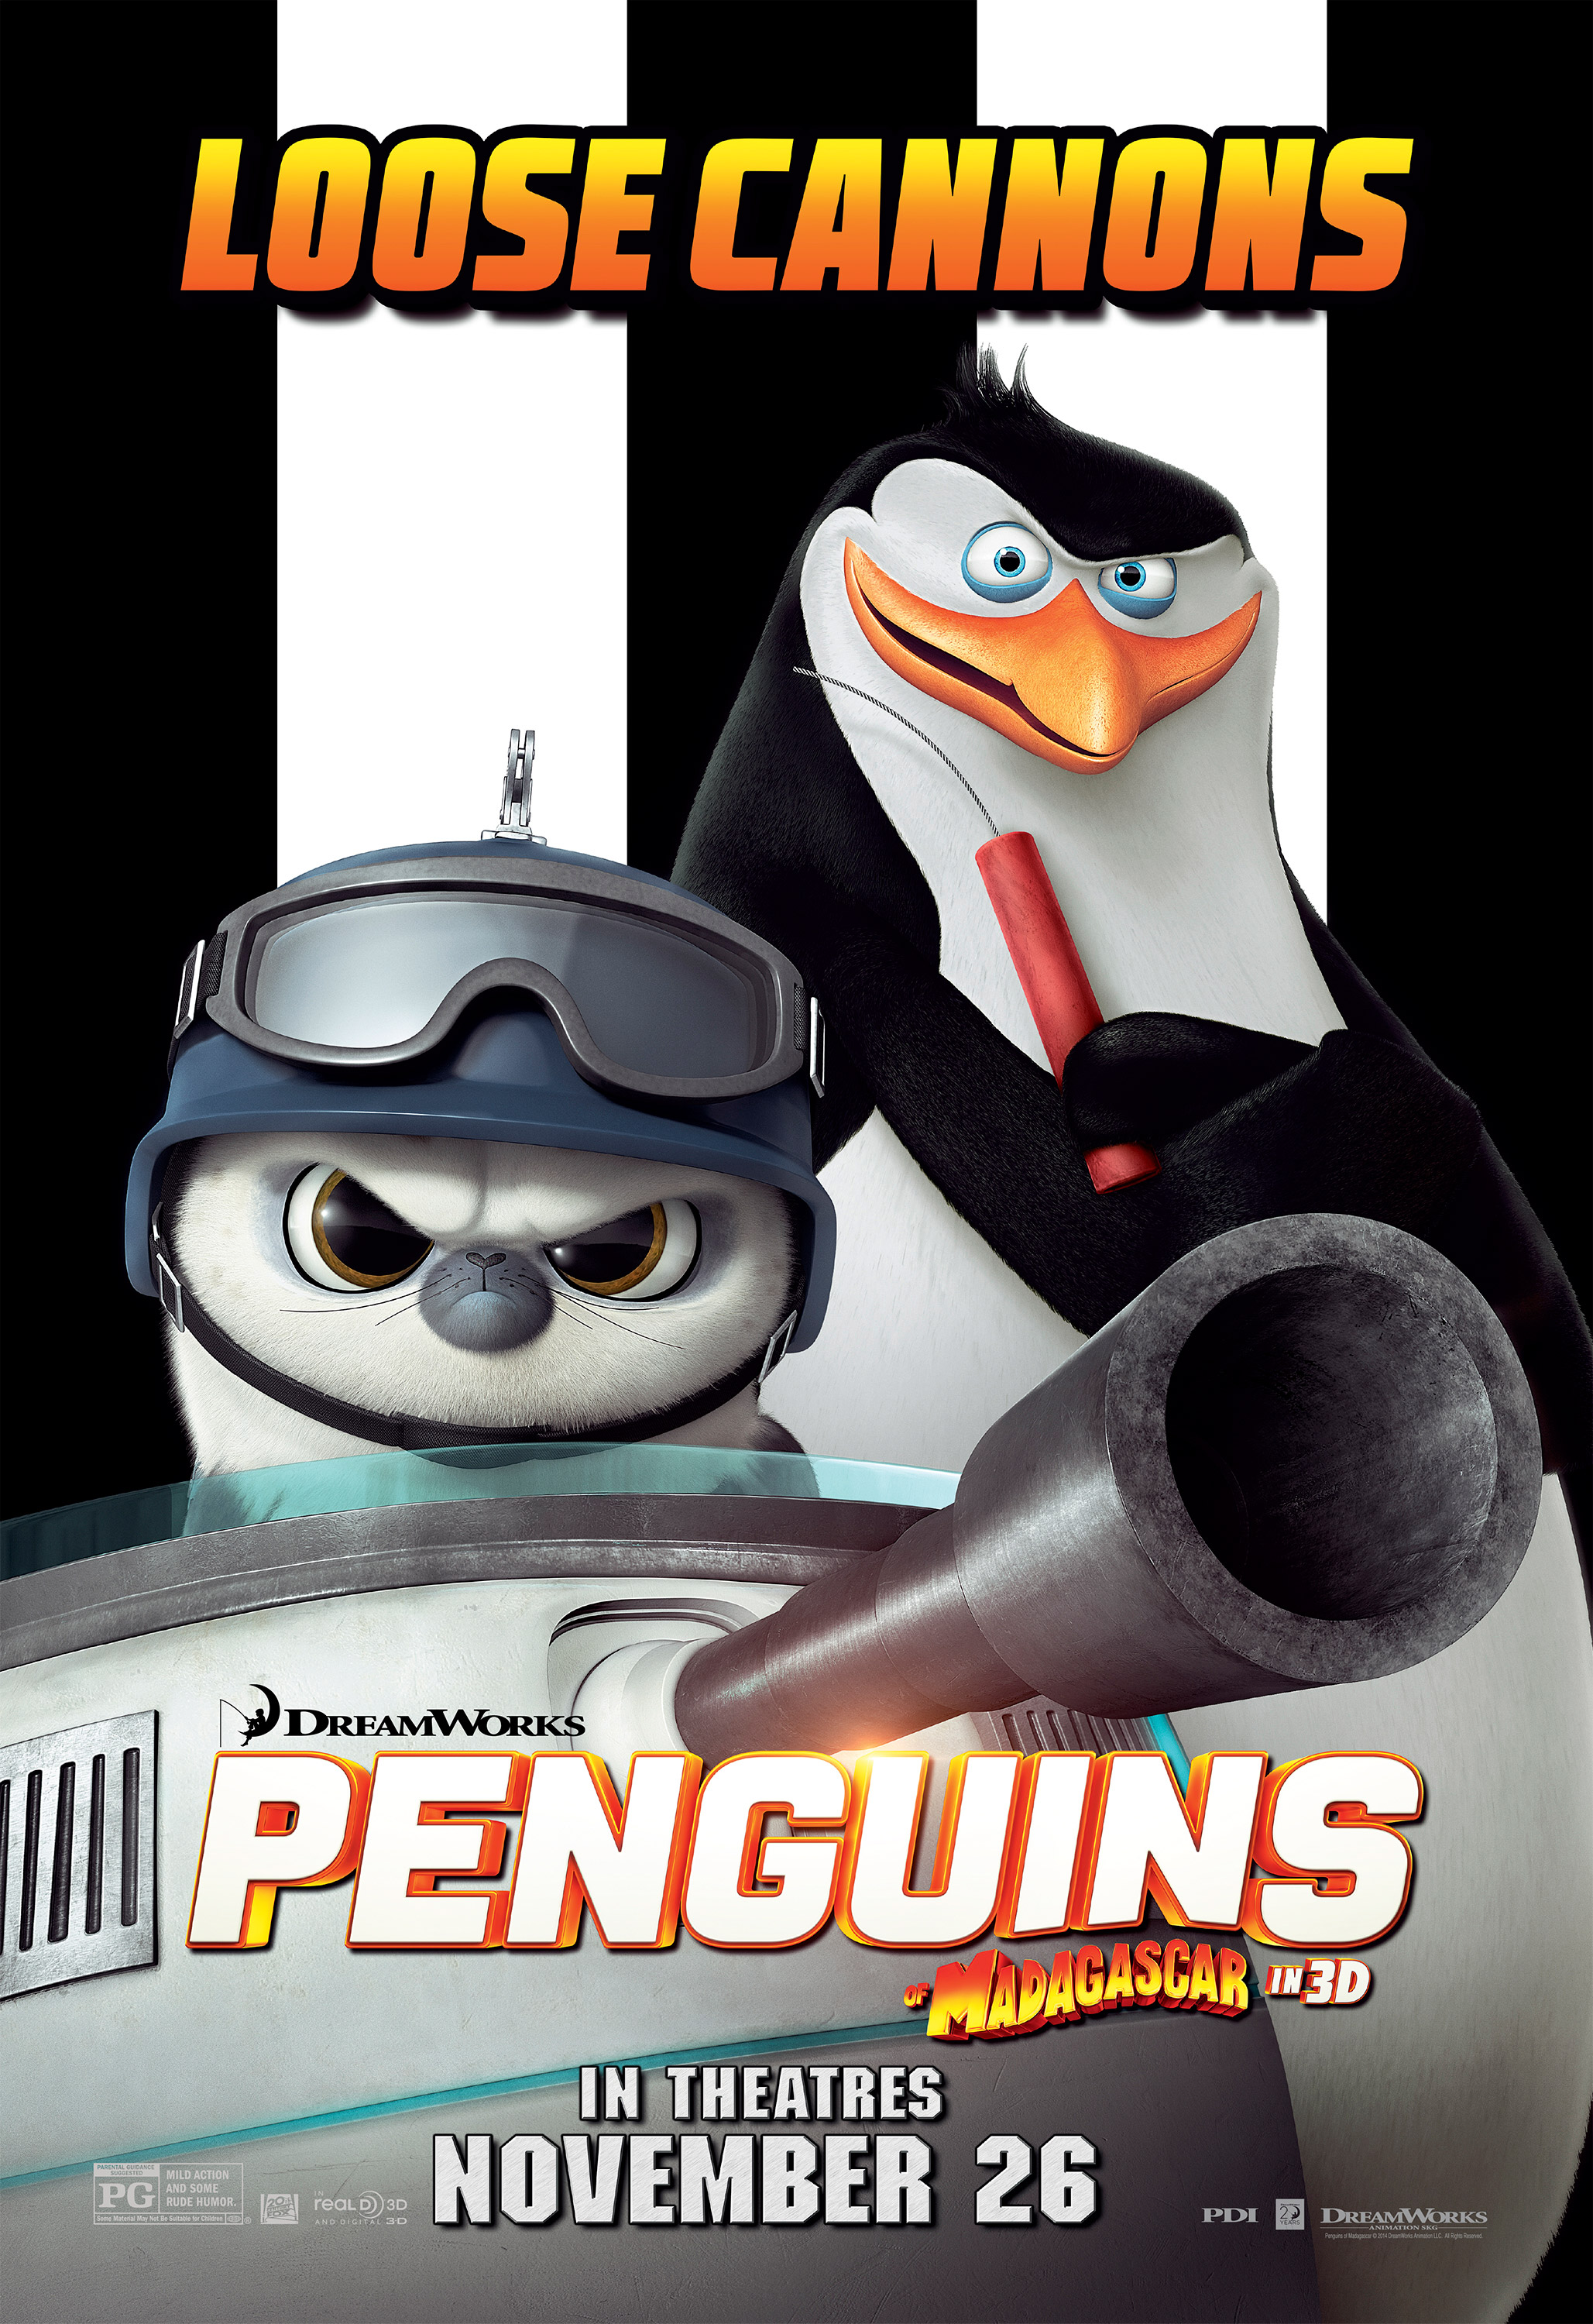 Exclusive penguins of madagascar poster debut fandango